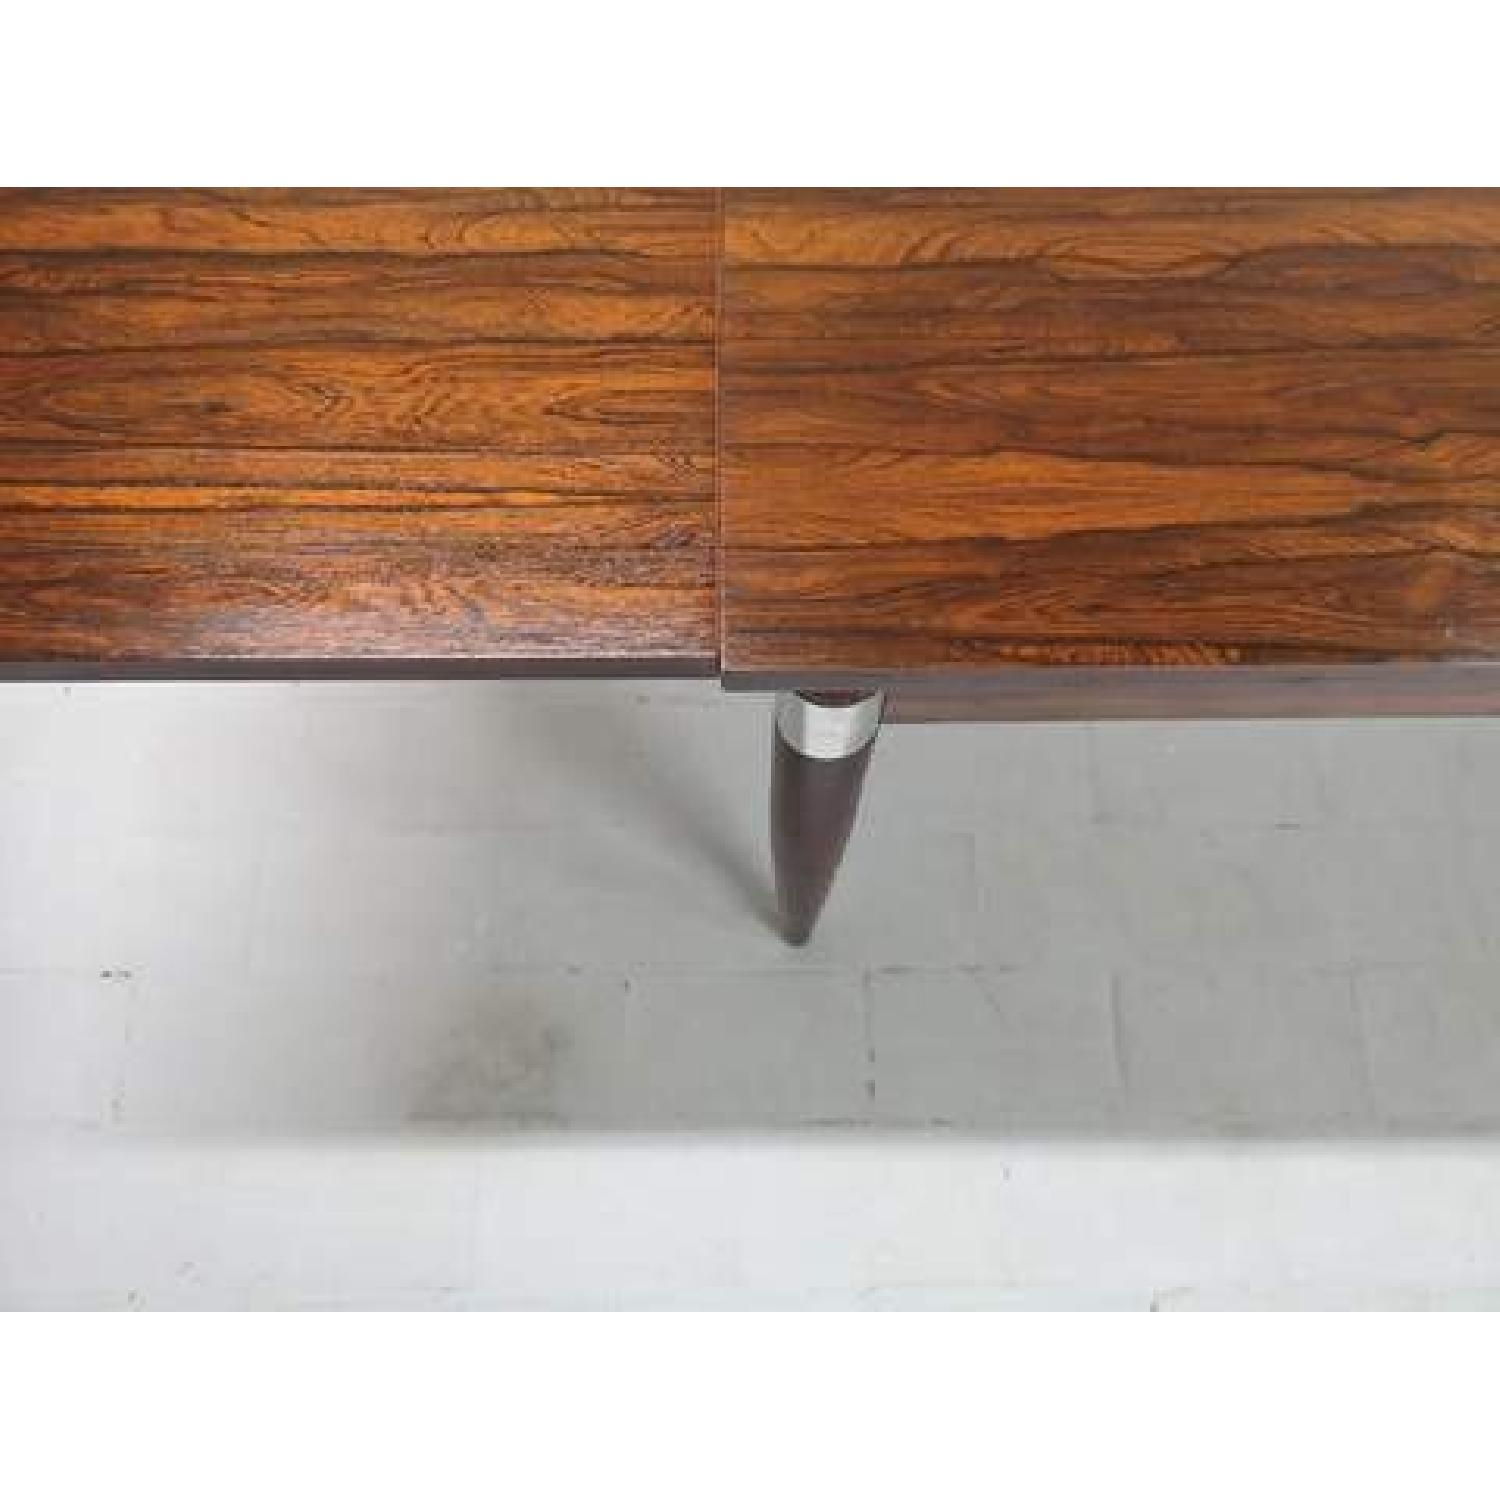 Mid-Century Modern Design Extendable Draw Leaf Dining Table - image-2